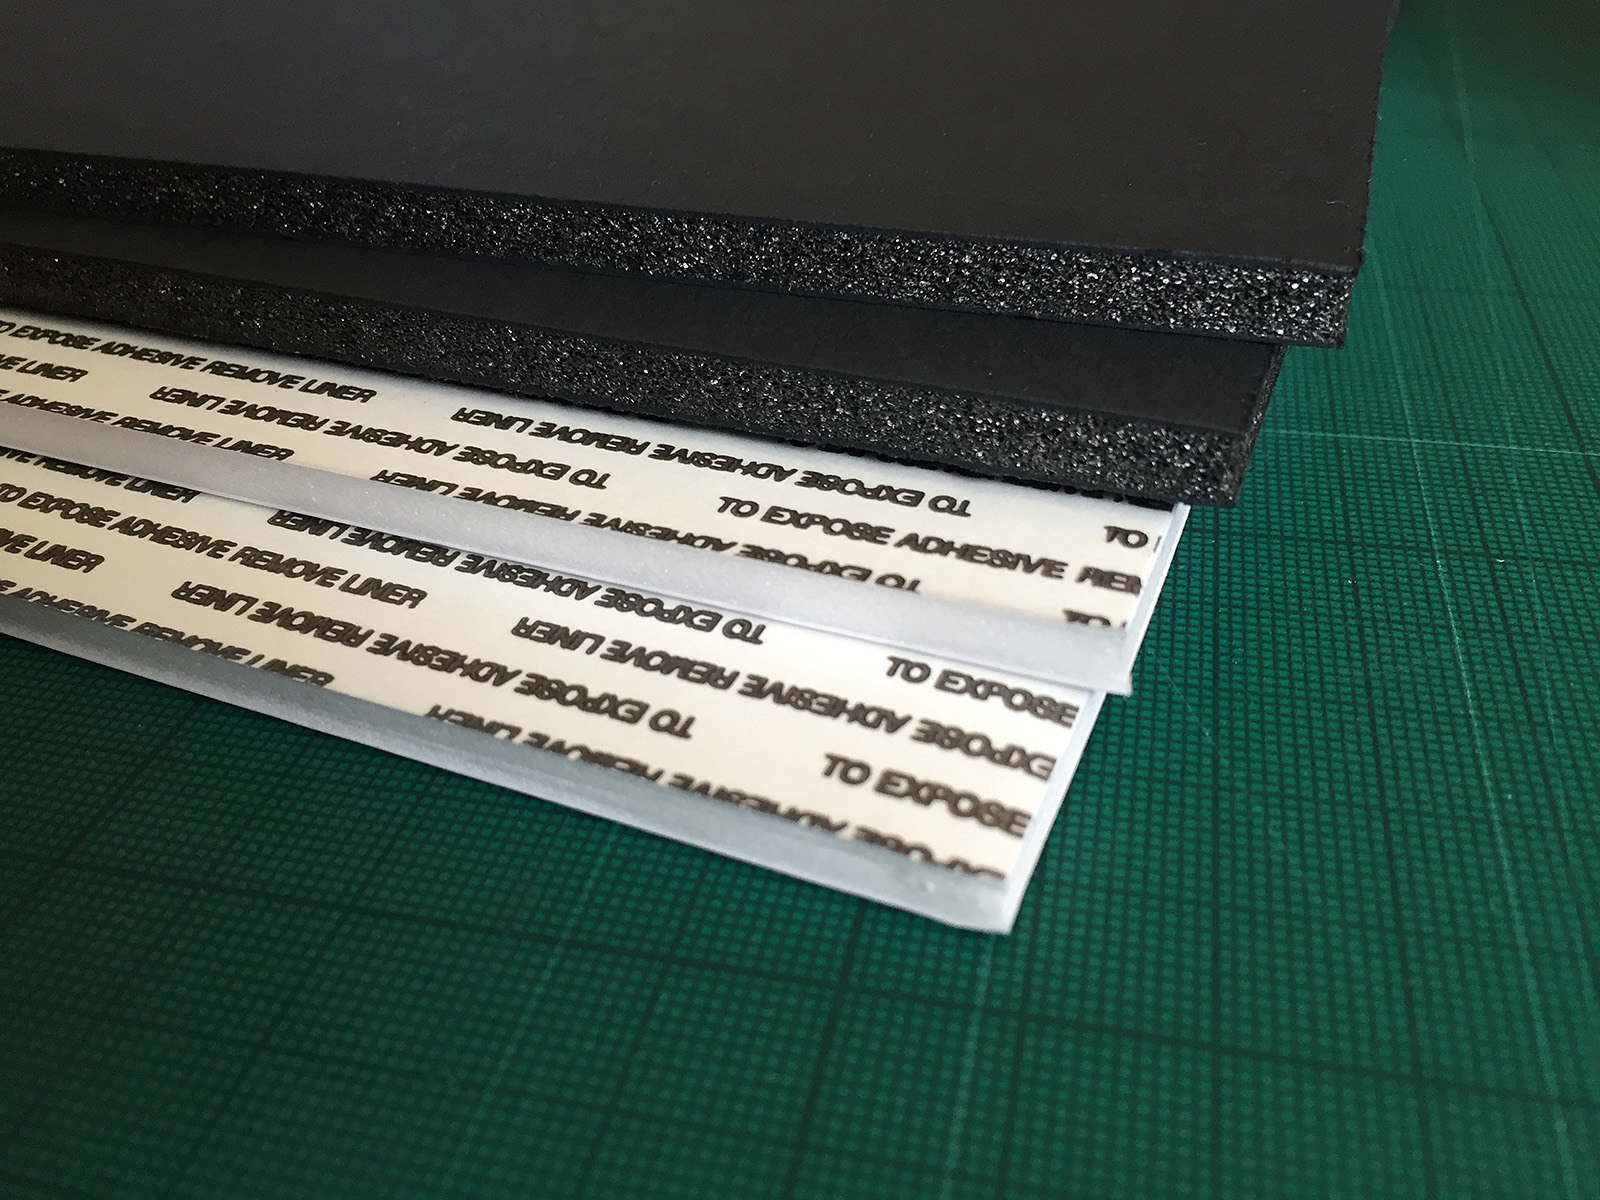 If you hate having too many options then choosing foam board is wonderful: Black or white.